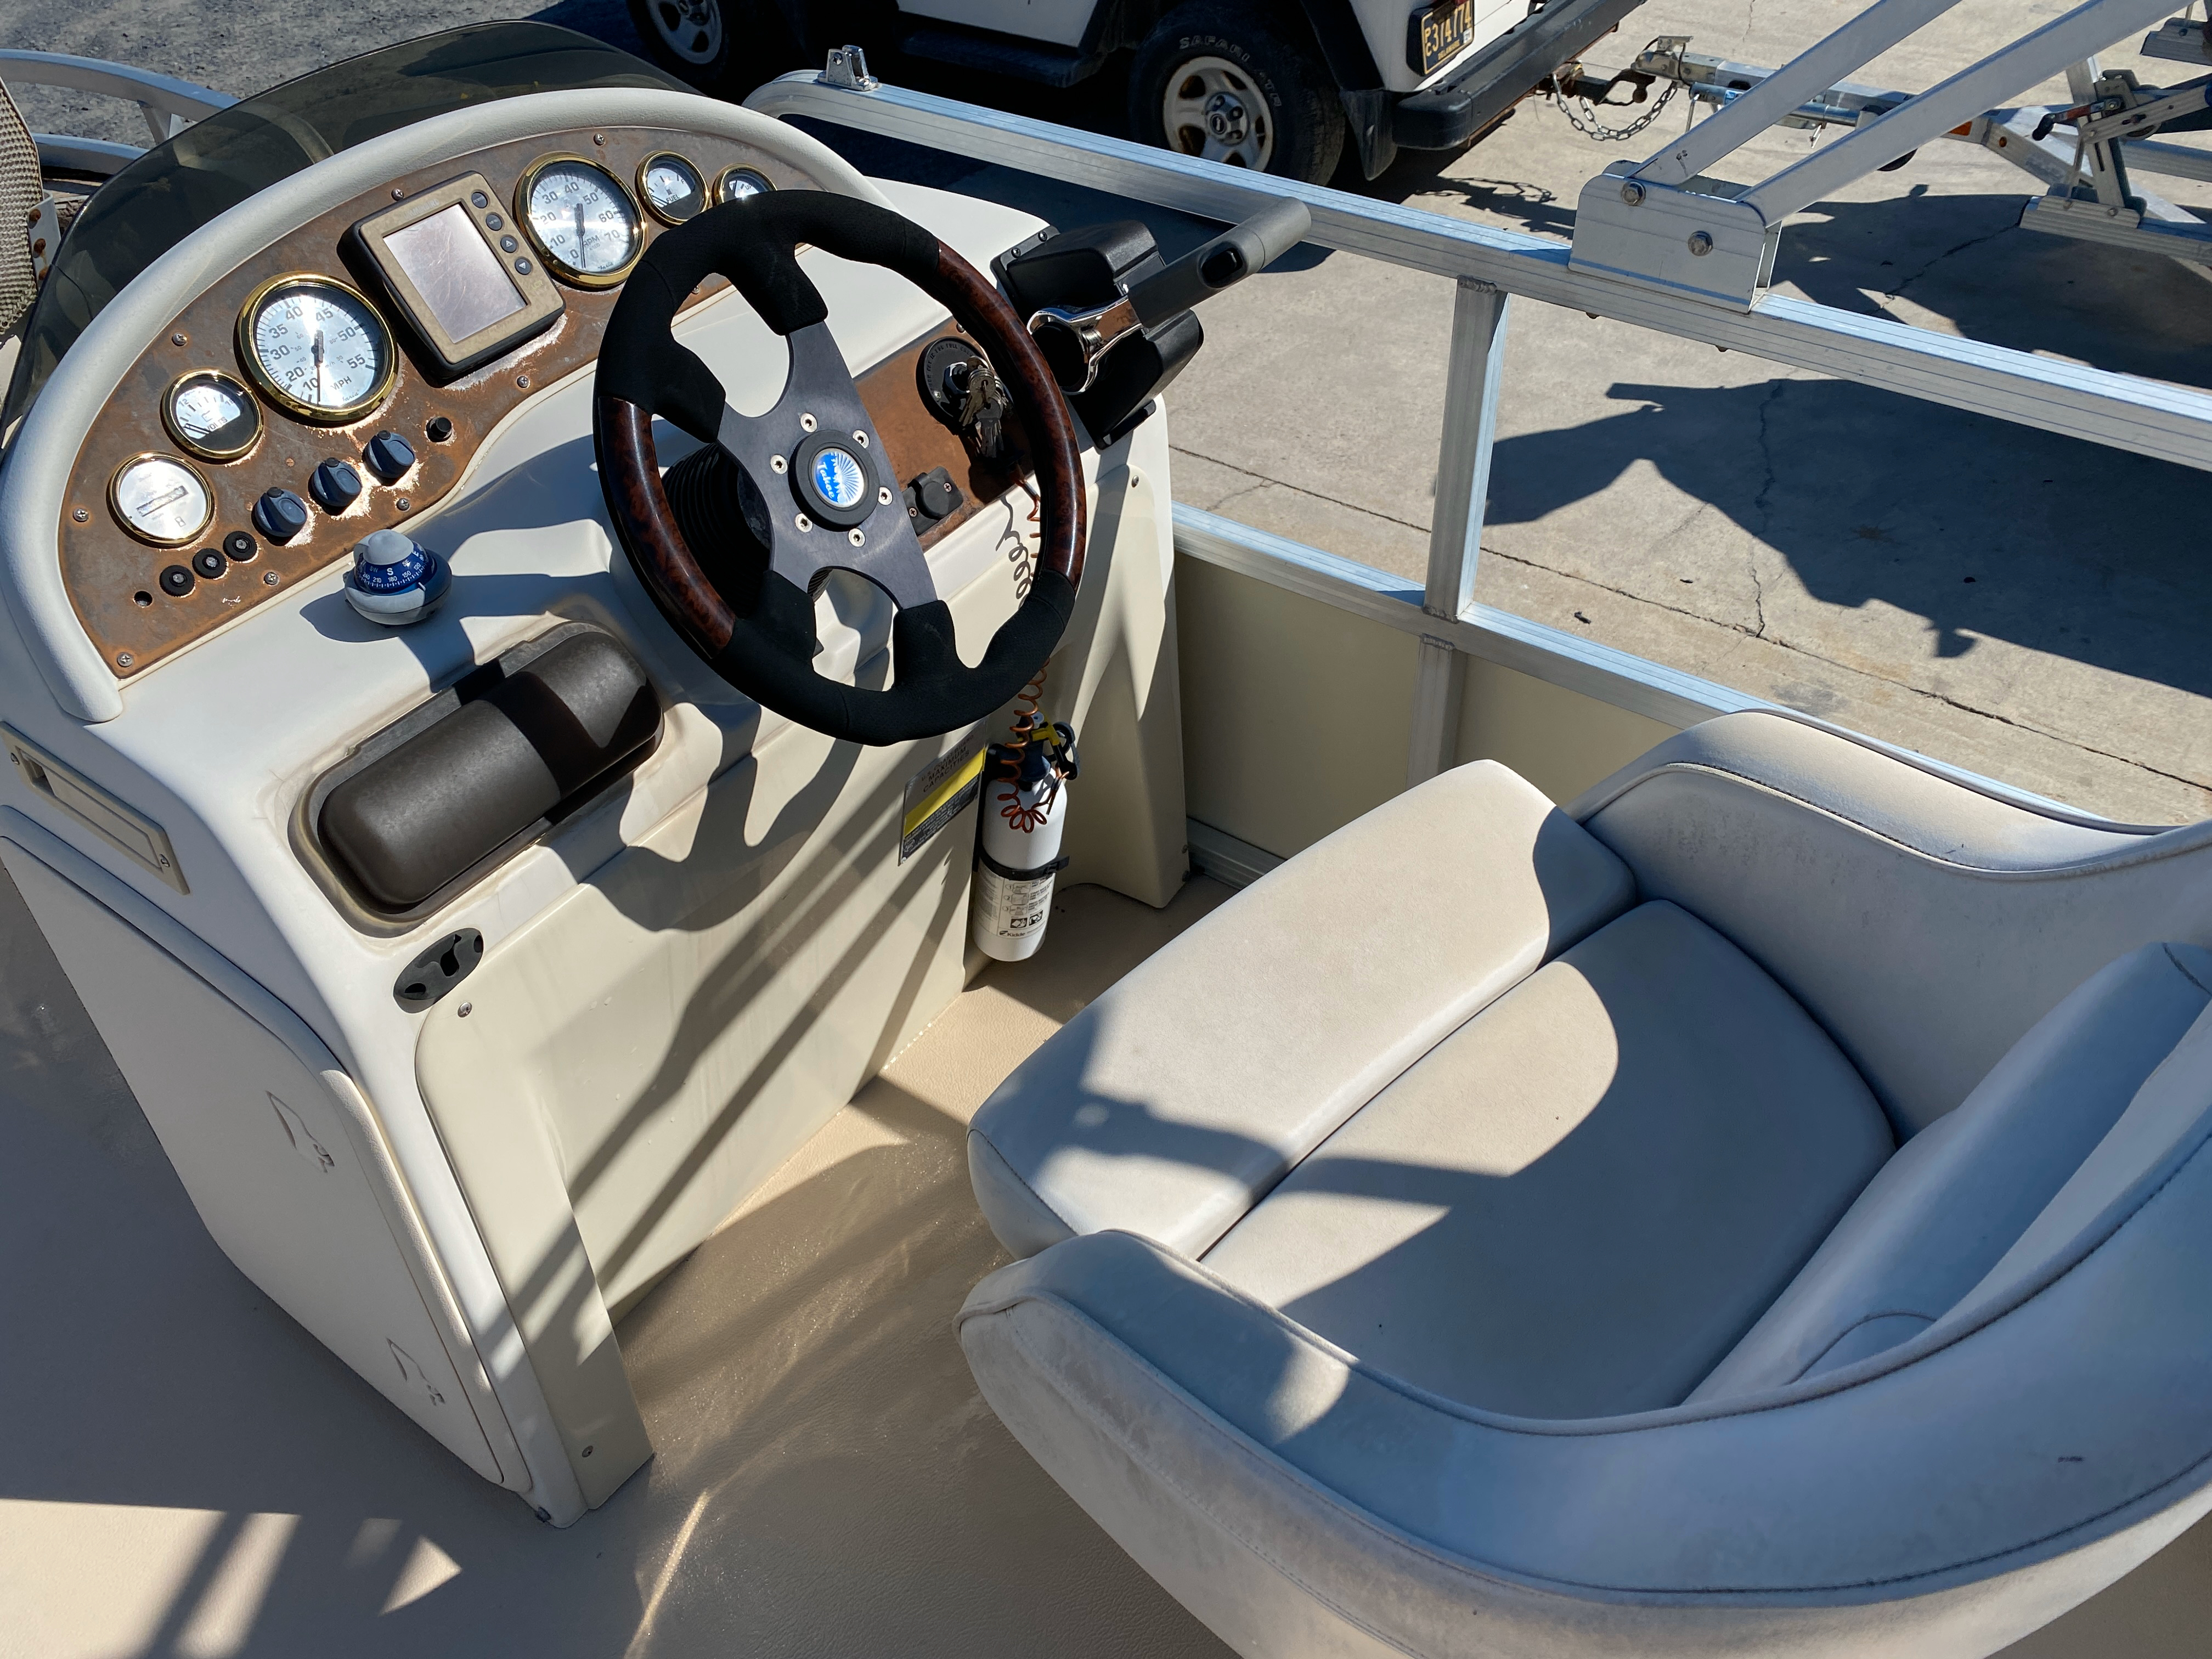 2002 Tahoe boat for sale, model of the boat is Grand Tahoe FNF & Image # 2 of 10